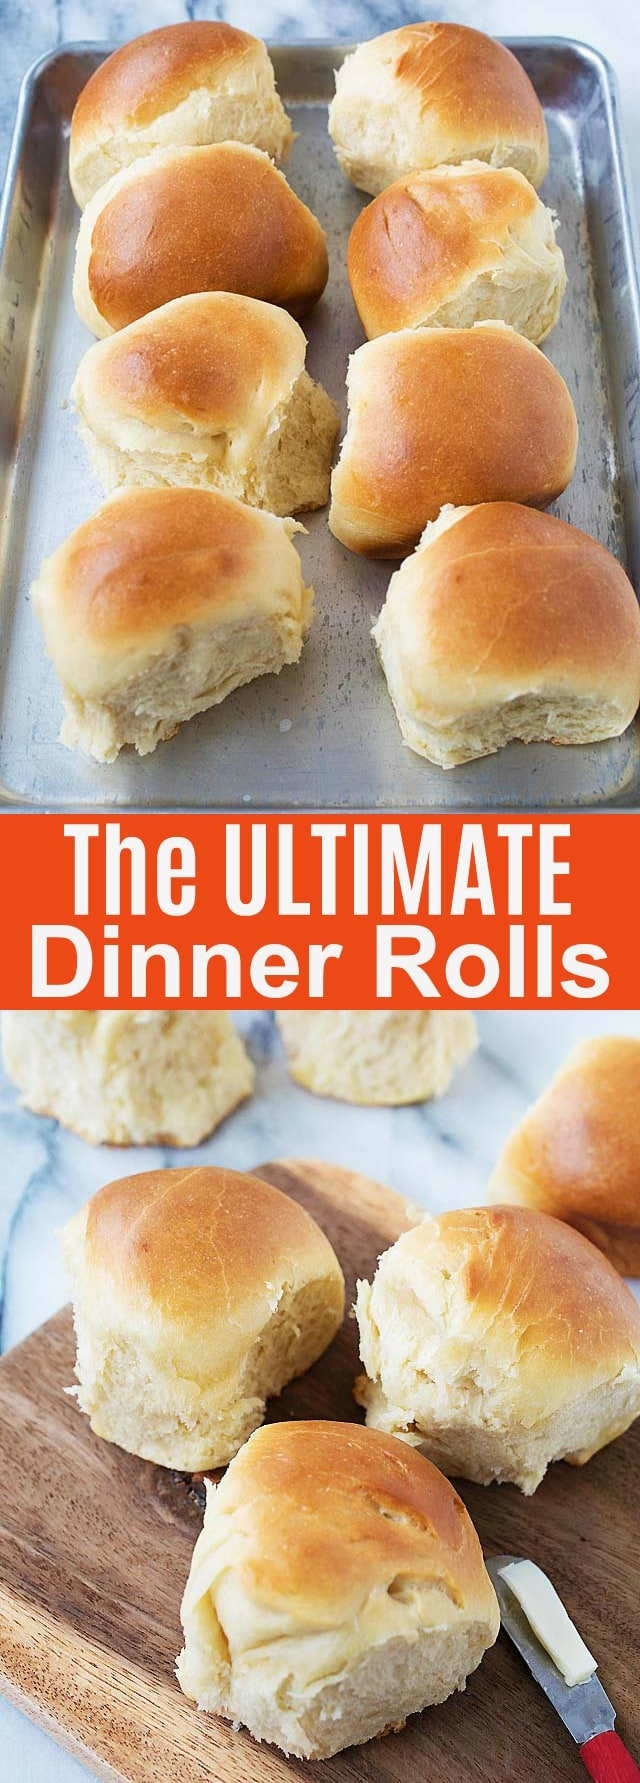 The Ultimate Dinner Rolls - this is the BEST homemade recipe that yields cotton soft, milky, rich and sweet rolls that you can't stop eating. Fail proof and novice baker friendly.